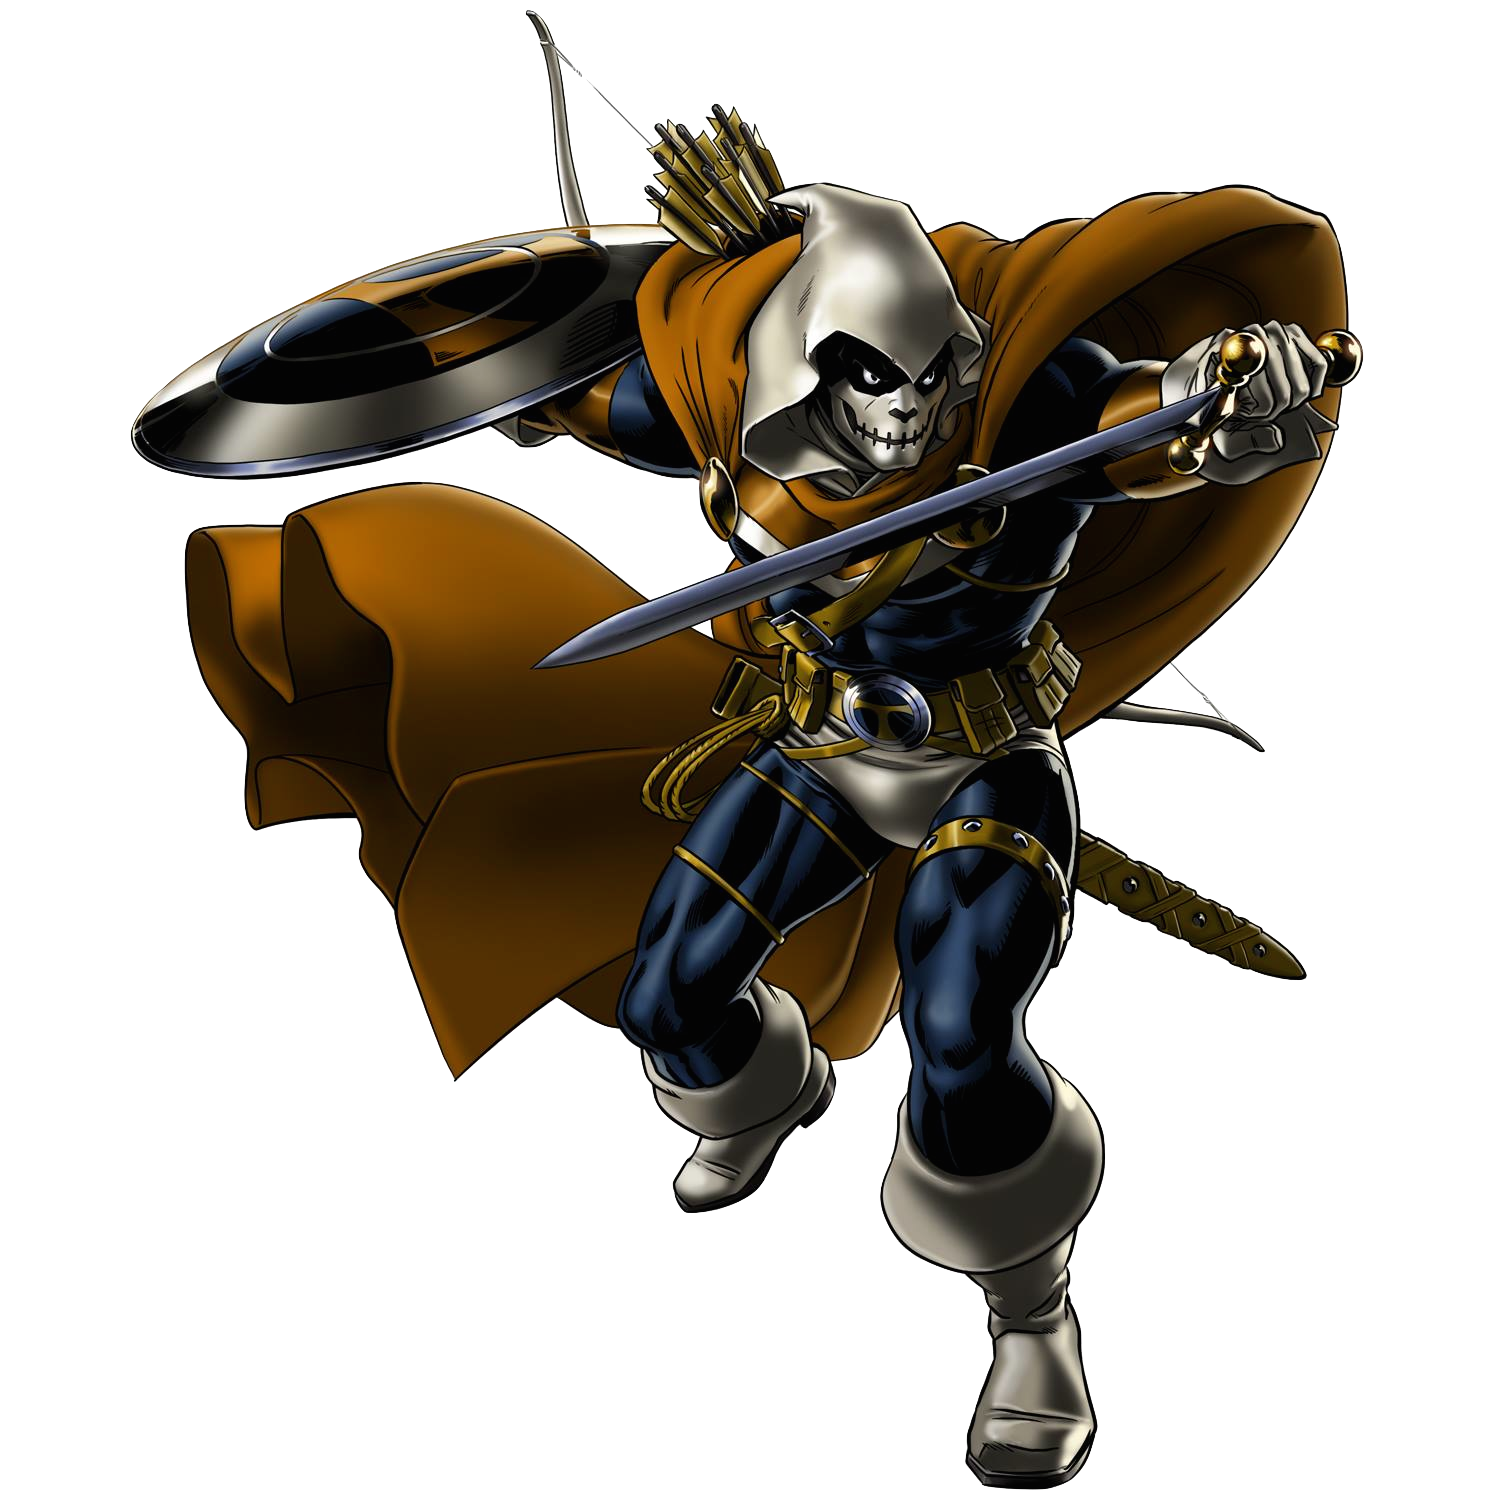 Images of Taskmaster | 1500x1500